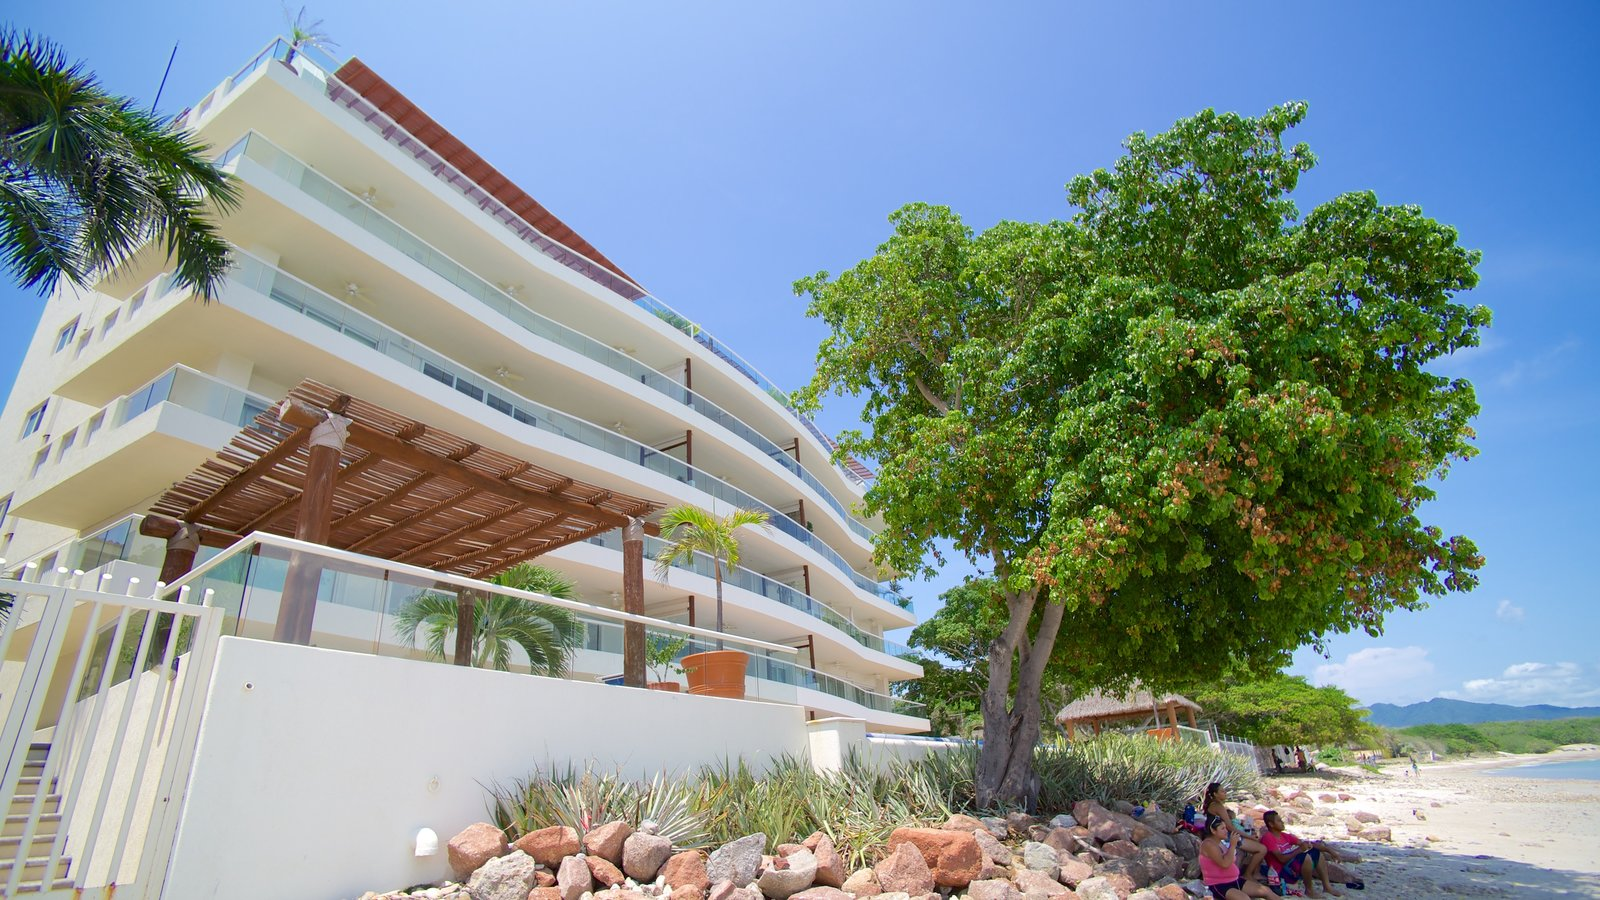 Punta Mita showing a beach and a luxury hotel or resort as well as a family